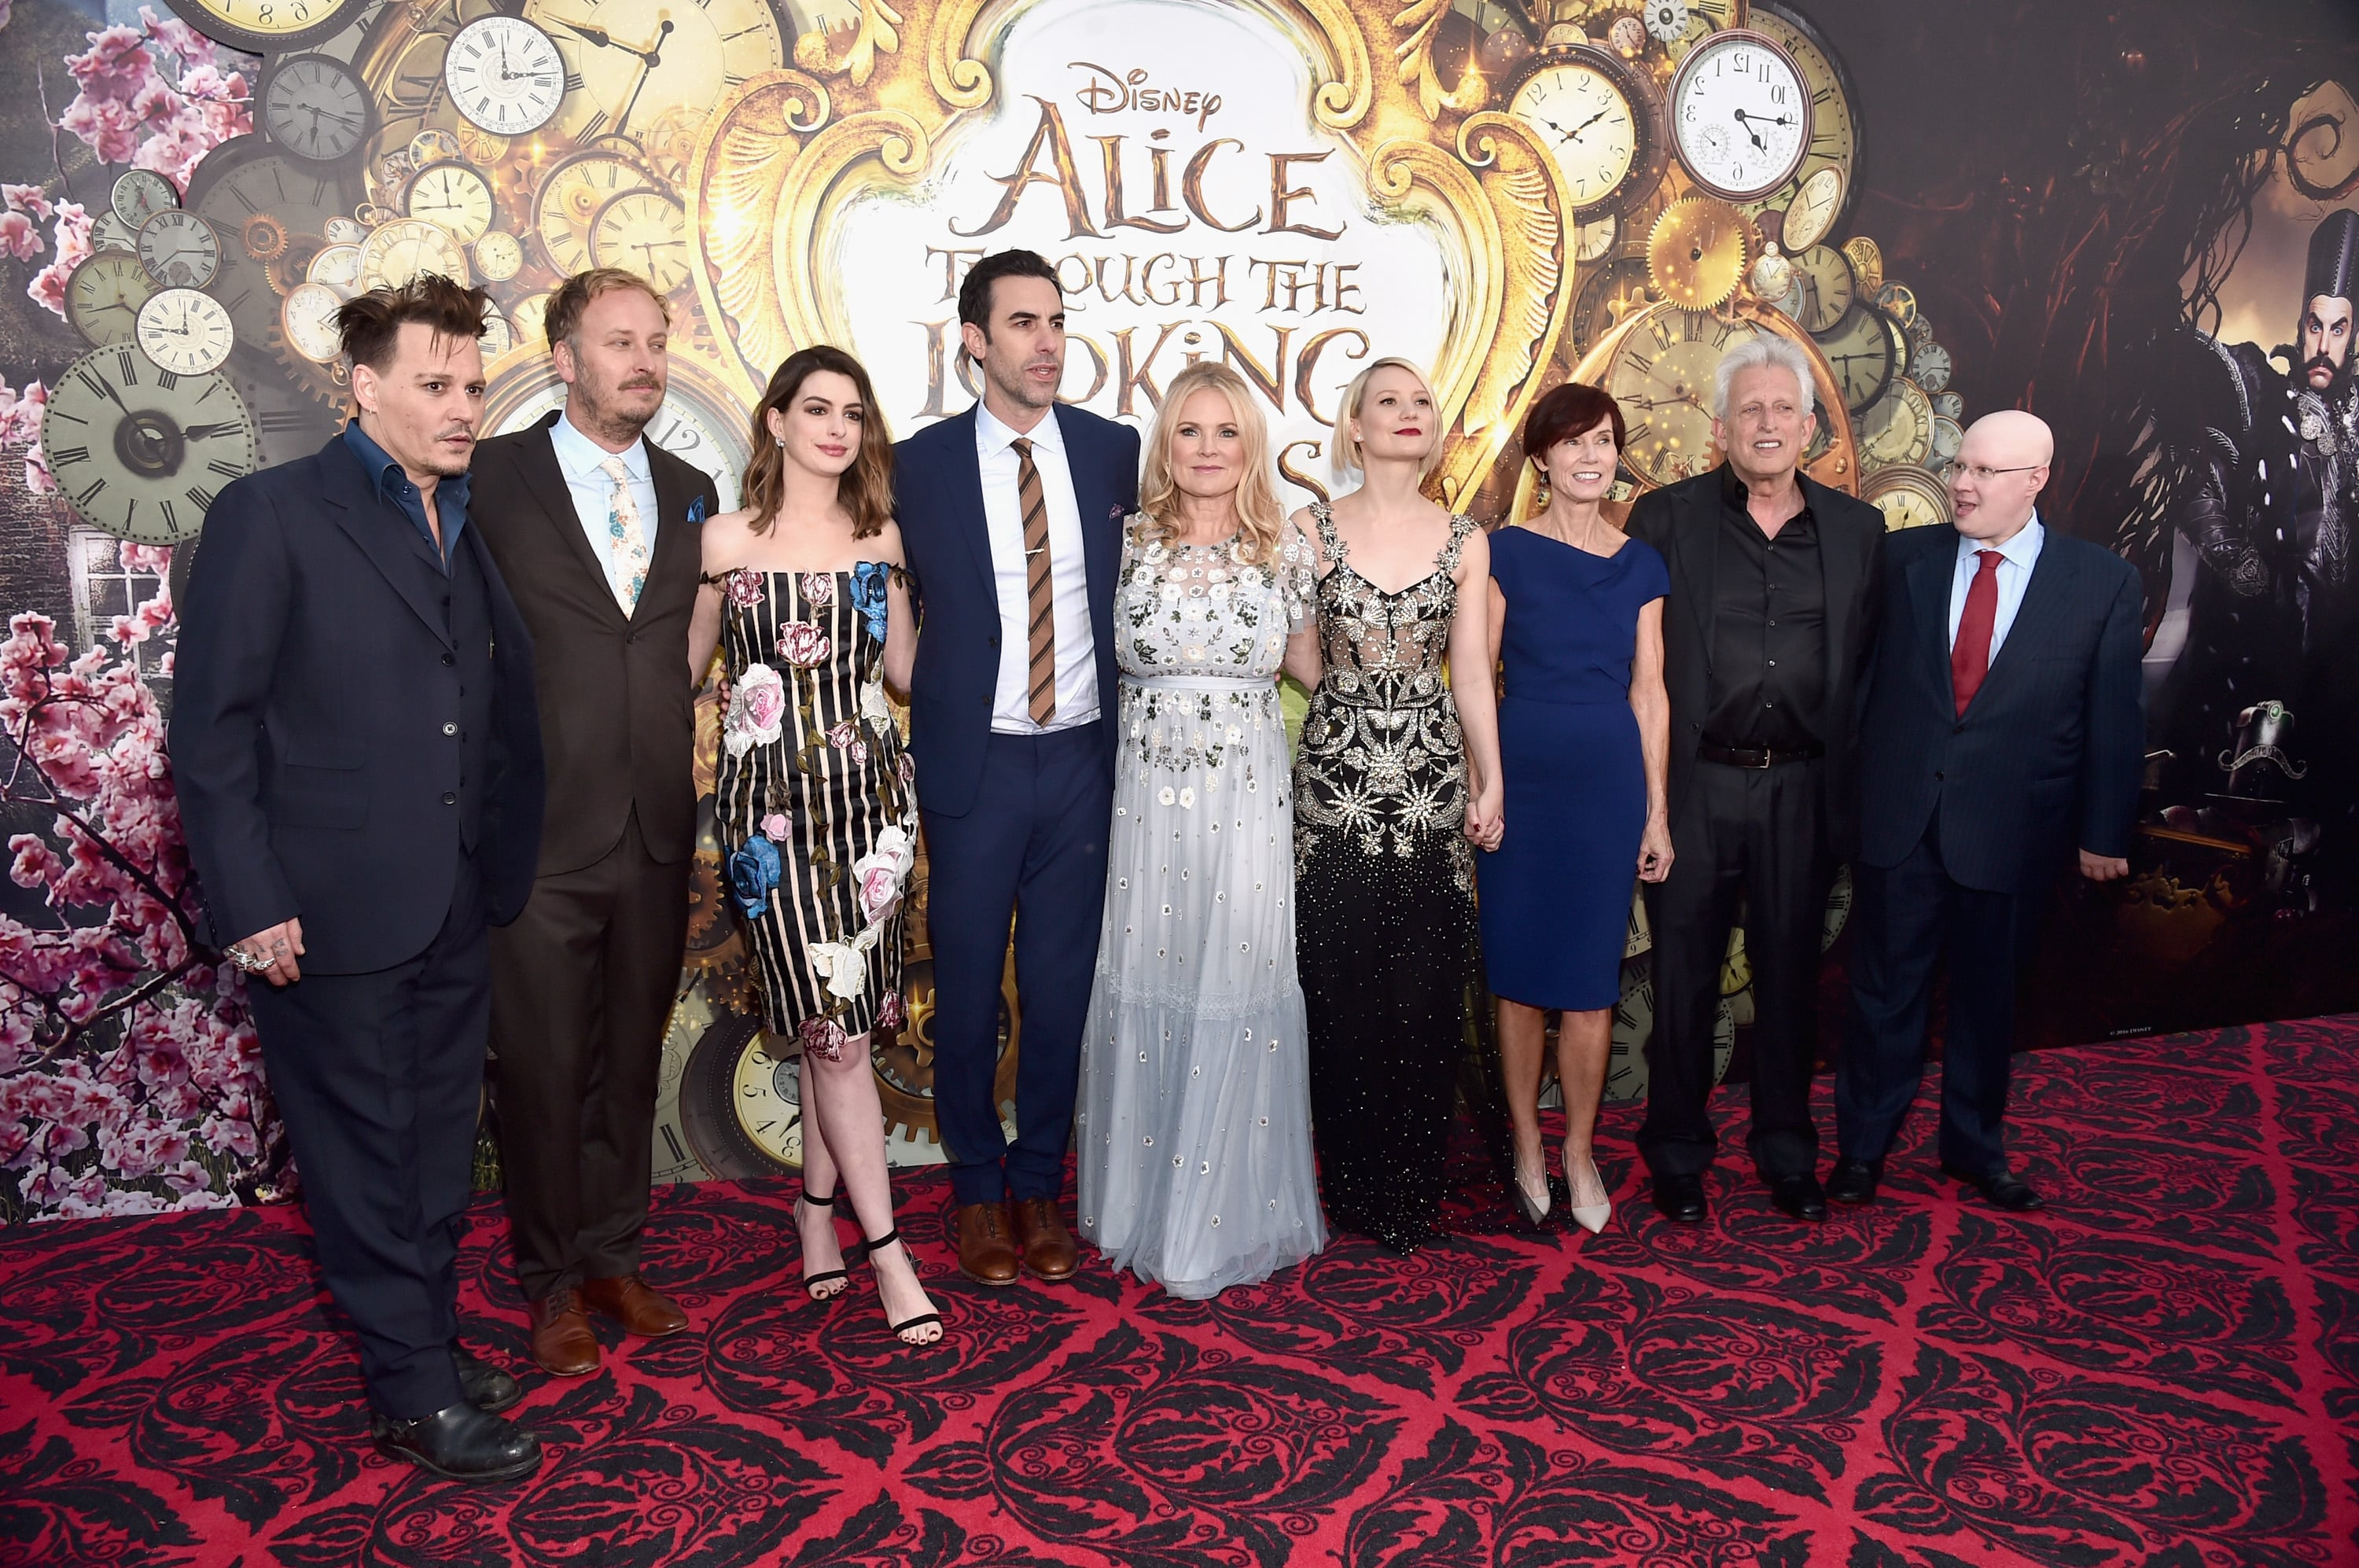 HOLLYWOOD, CA - MAY 23: (L-R) Actor Johnny Depp, director James Bobin, actors Anne Hathaway, Sacha Baron Cohen, producer Suzanne Todd, Mia Wasikowska, screenwriter Linda Wollverton, producer Joe Roth and actor Matt Lucas attend Disney's 'Alice Through the Looking Glass' premiere with the cast of the film, which included Johnny Depp, Anne Hathaway, Mia Wasikowska and Sacha Baron Cohen at the El Capitan Theatre on May 23, 2016 in Hollywood, California. (Photo by Alberto E. Rodriguez/Getty Images for Disney) *** Local Caption *** Johnny Depp; James Bobin; Anne Hathaway; Sacha Baron Cohen; Suzanne Todd; Mia Wasikowska; Linda Wolverton; Joe Roth; Matt Lucas